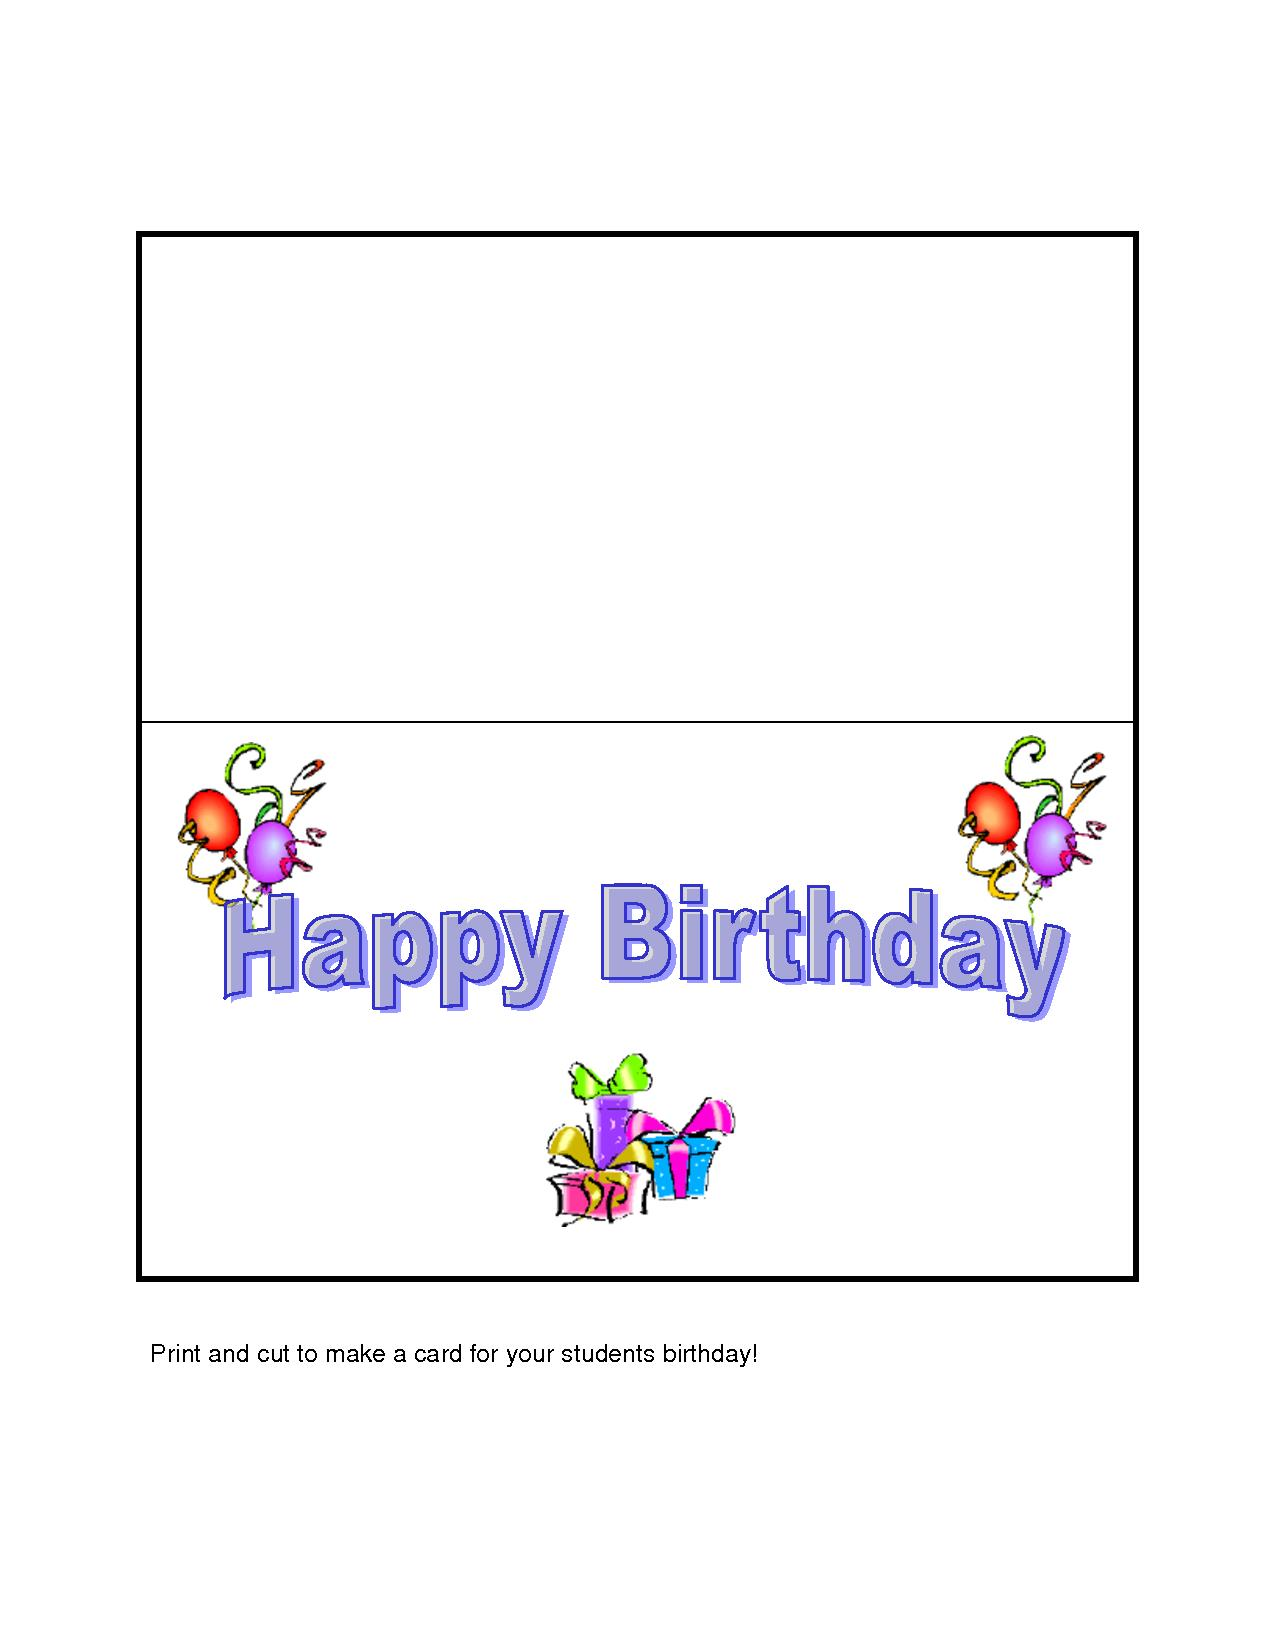 create free printable birthday cards online ; birthday-card-template-birthday-card-template-birthday-card-template-word-free-birthday-card-template-psd-birthday-card-template-black-and